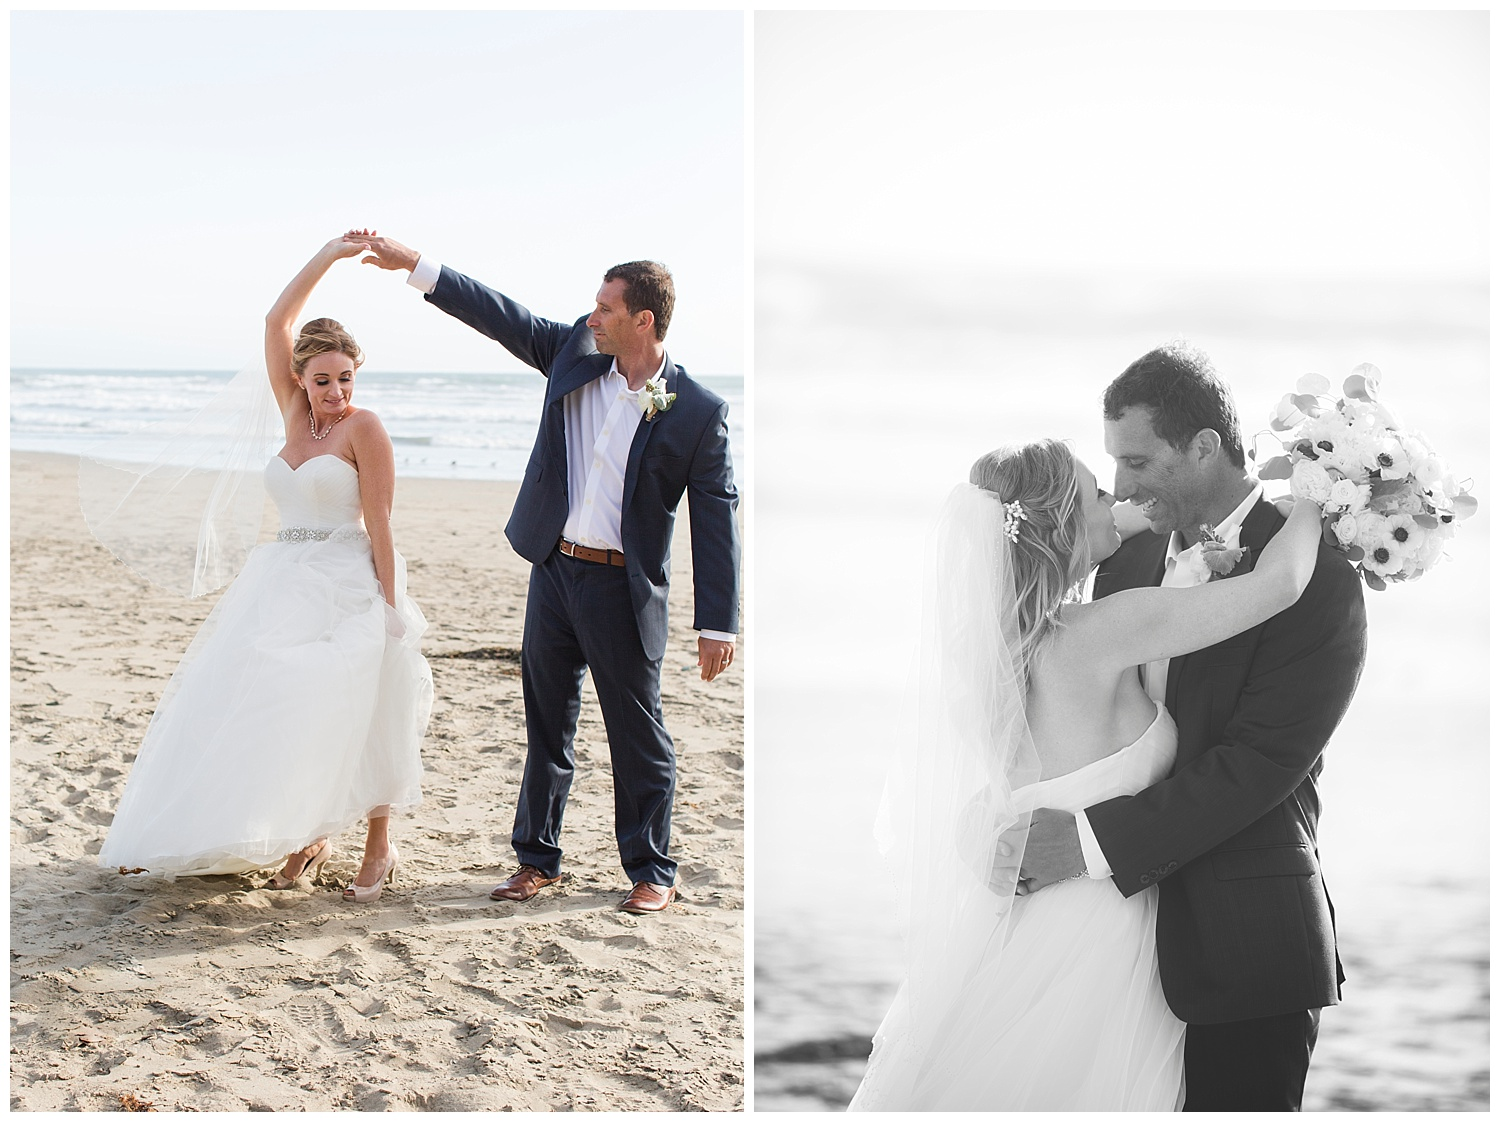 Malzone wedding_Beach wedding_Renoda Campbell Photography-6441.jpg